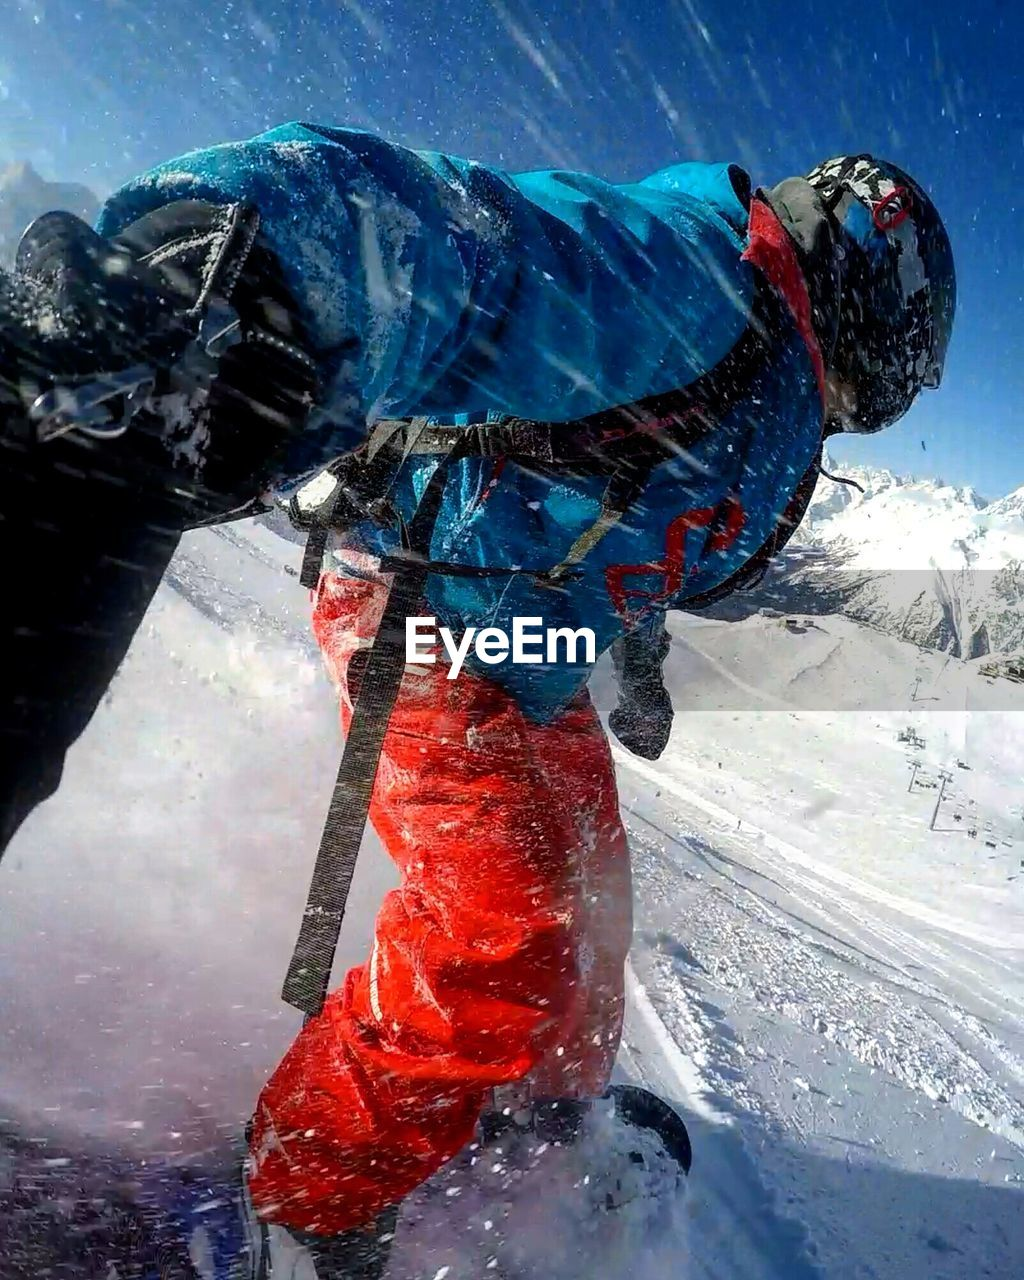 winter, cold temperature, nature, snow, day, one person, mountain, water, sport, outdoors, clothing, unrecognizable person, scenics - nature, reflection, sky, red, blue, warm clothing